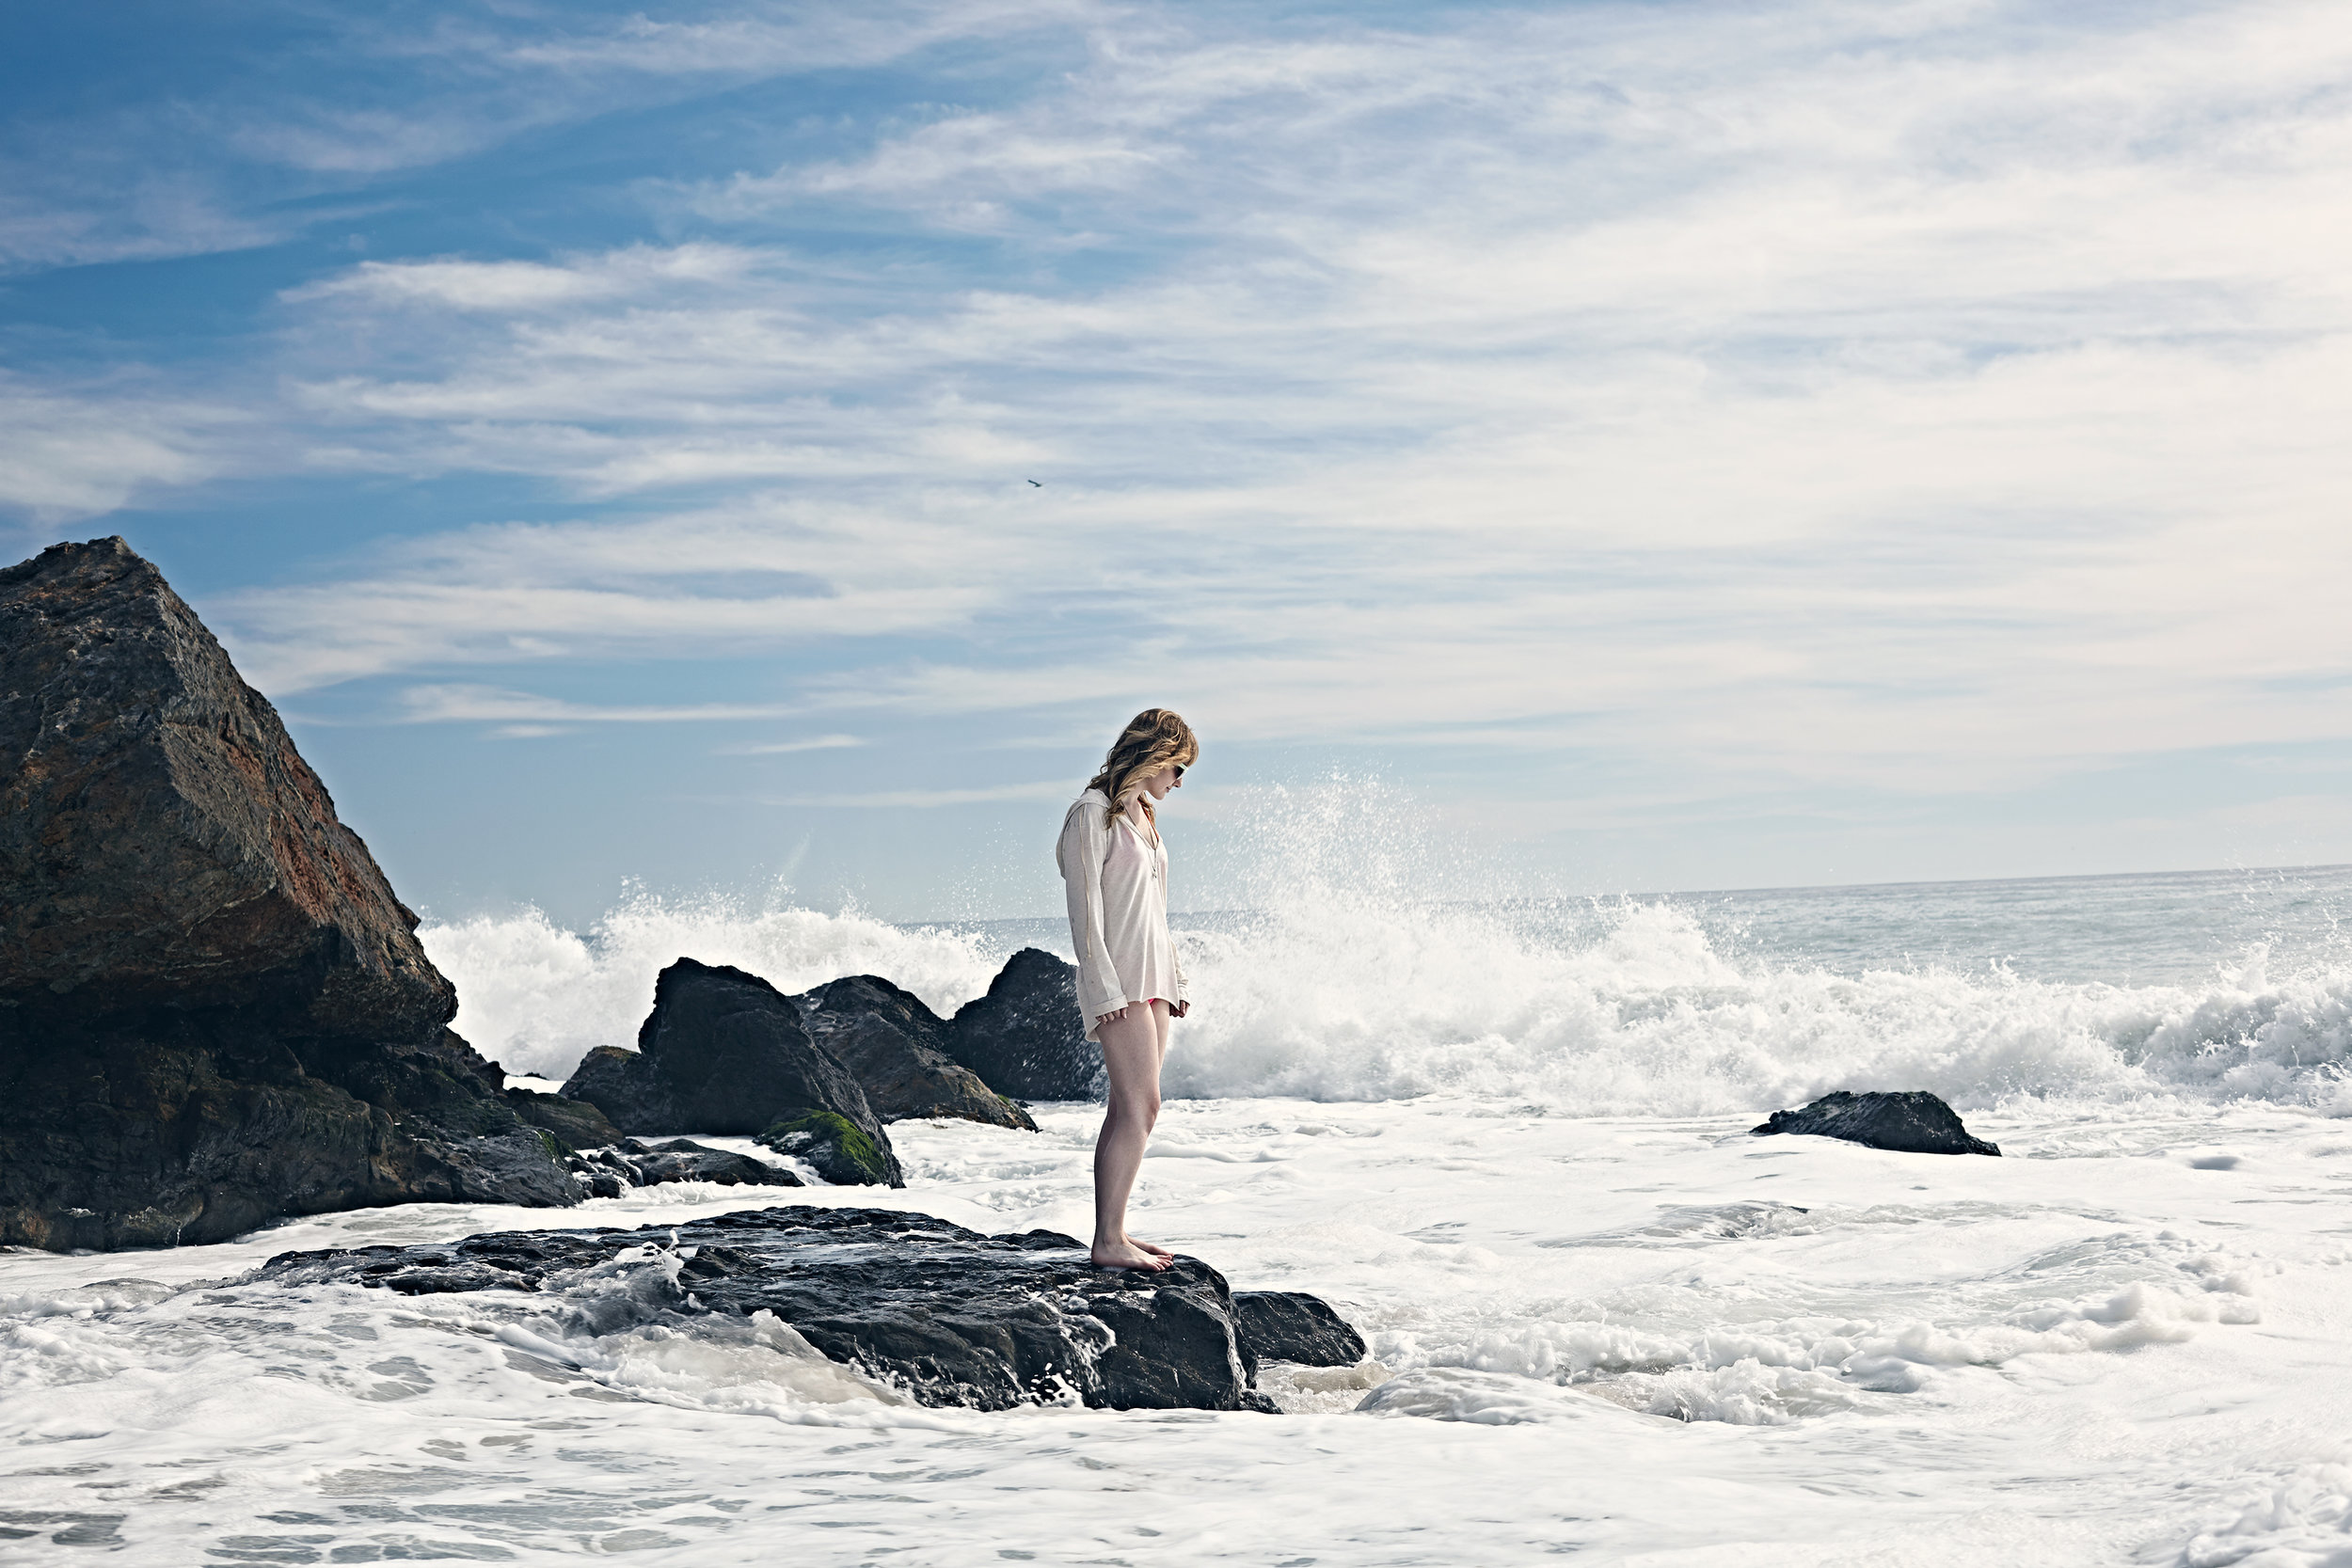 Young woman standing alone on a rock in the ocean